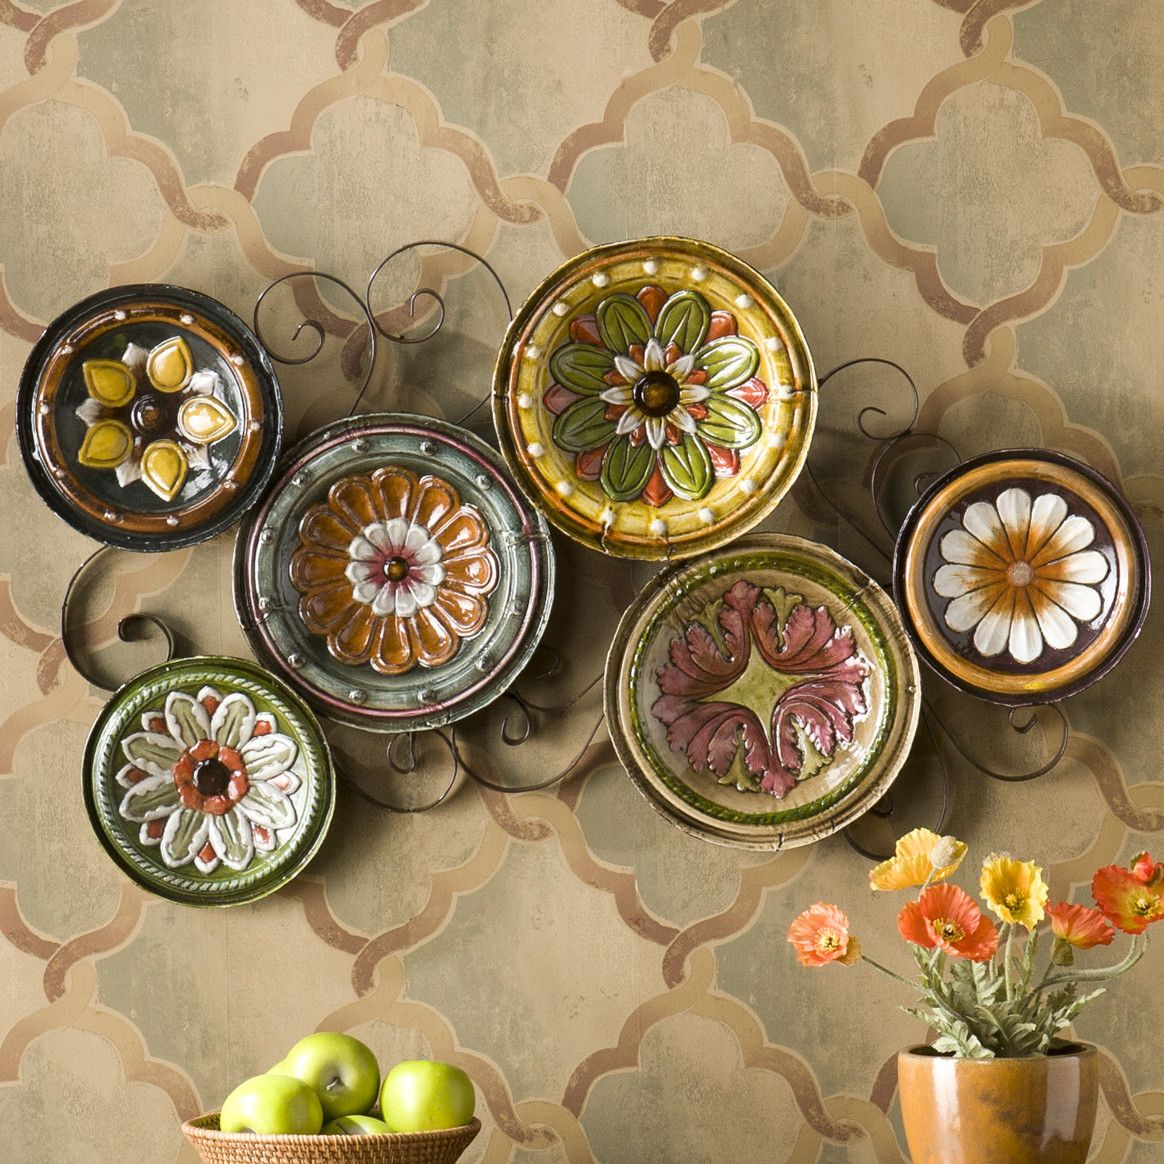 Wildon Home ® Scattered Italian Plates Wall Décor | Things Throughout Scattered Metal Italian Plates Wall Decor (View 29 of 30)